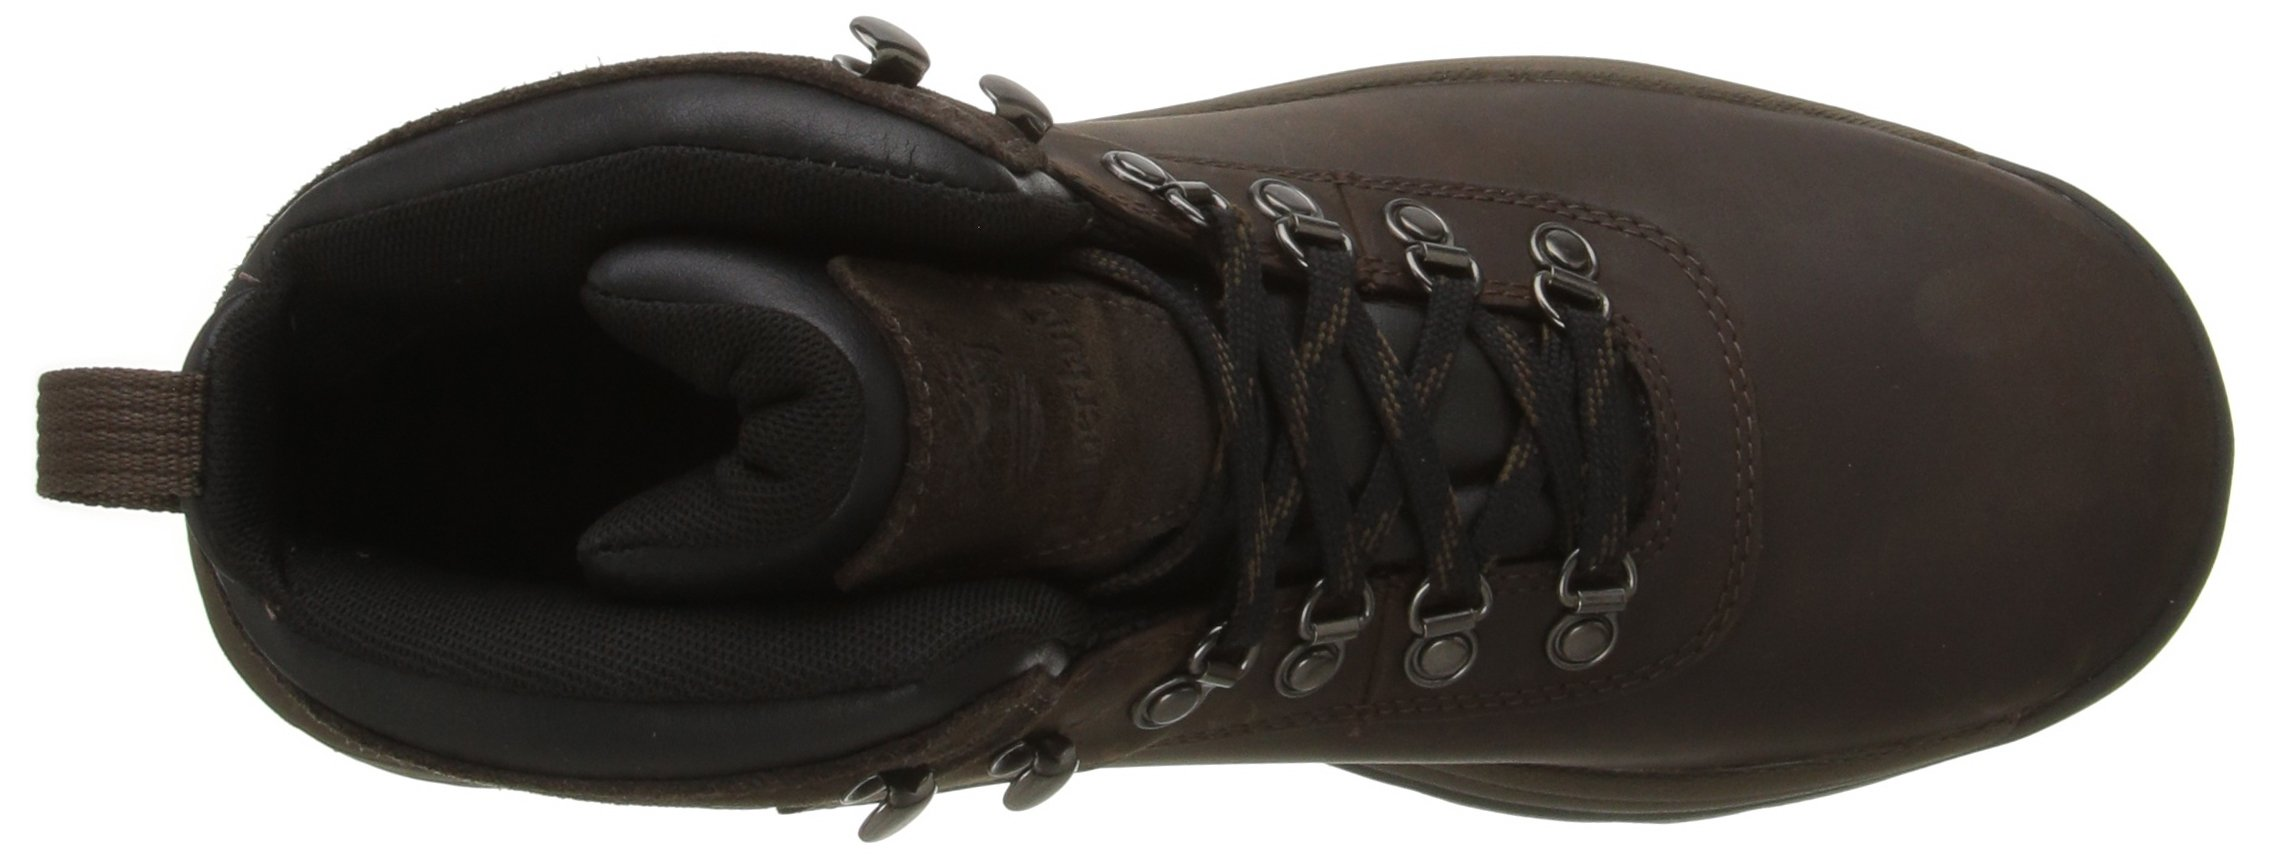 Timberland Men's Flume Waterproof Boot,Dark Brown,13 M US by Timberland (Image #8)